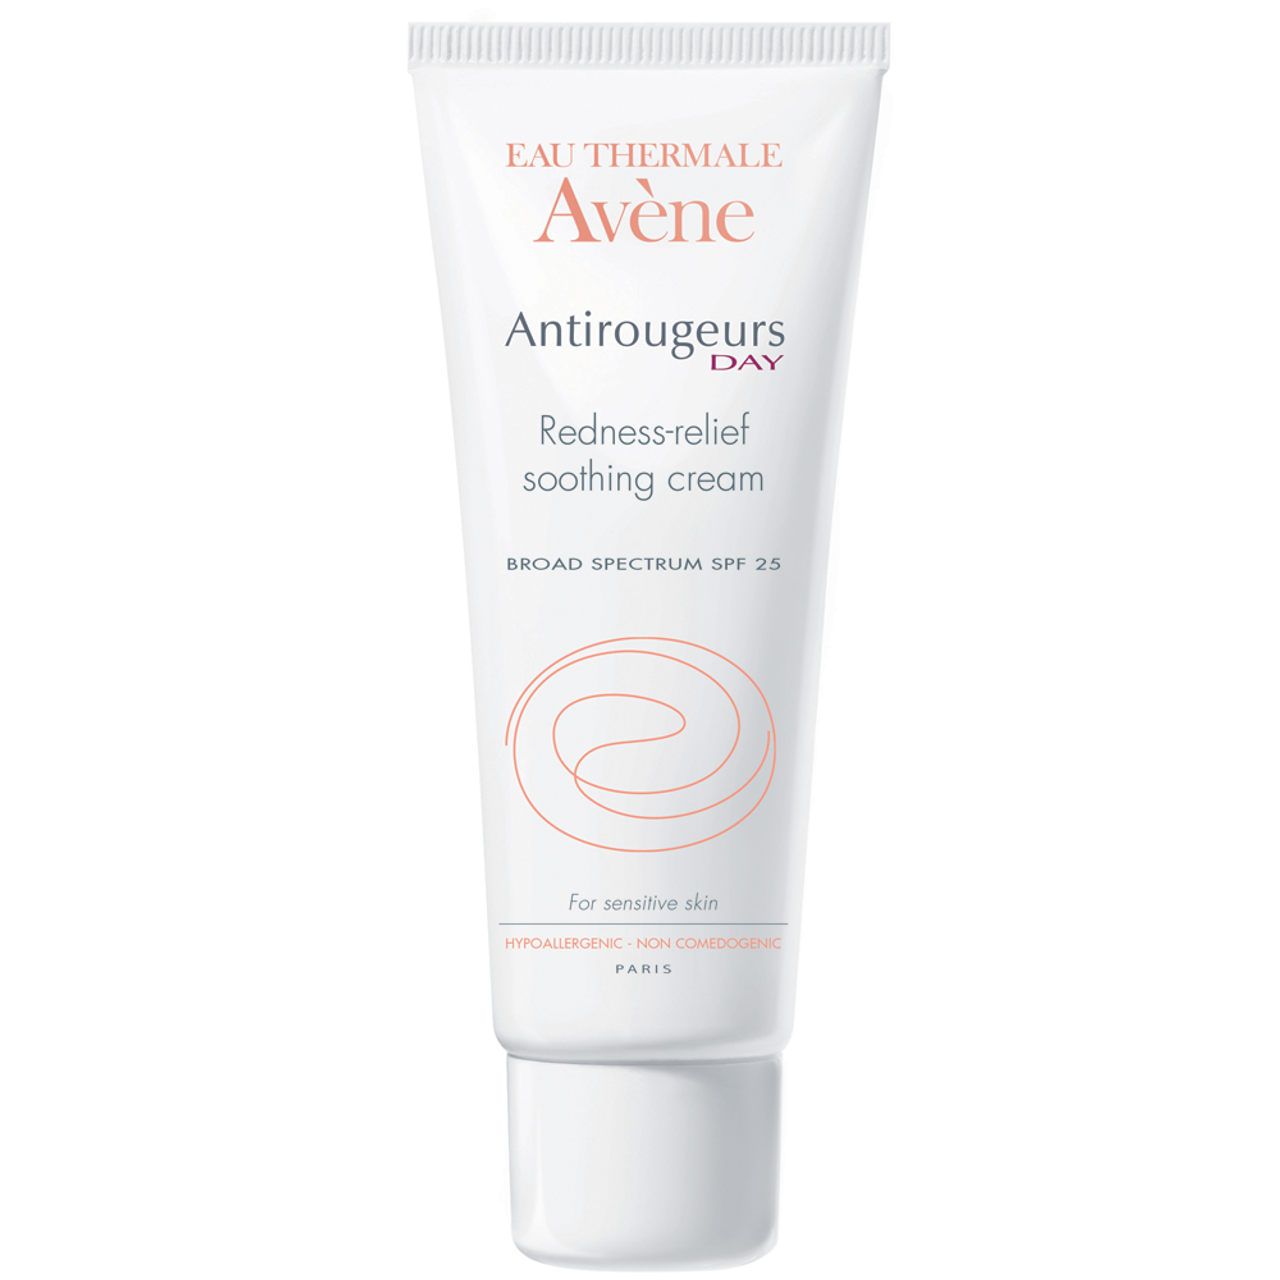 Avene Antirougeurs Day Redness Relief Soothing Cream SPF 25 (discontinued) BeautifiedYou.com